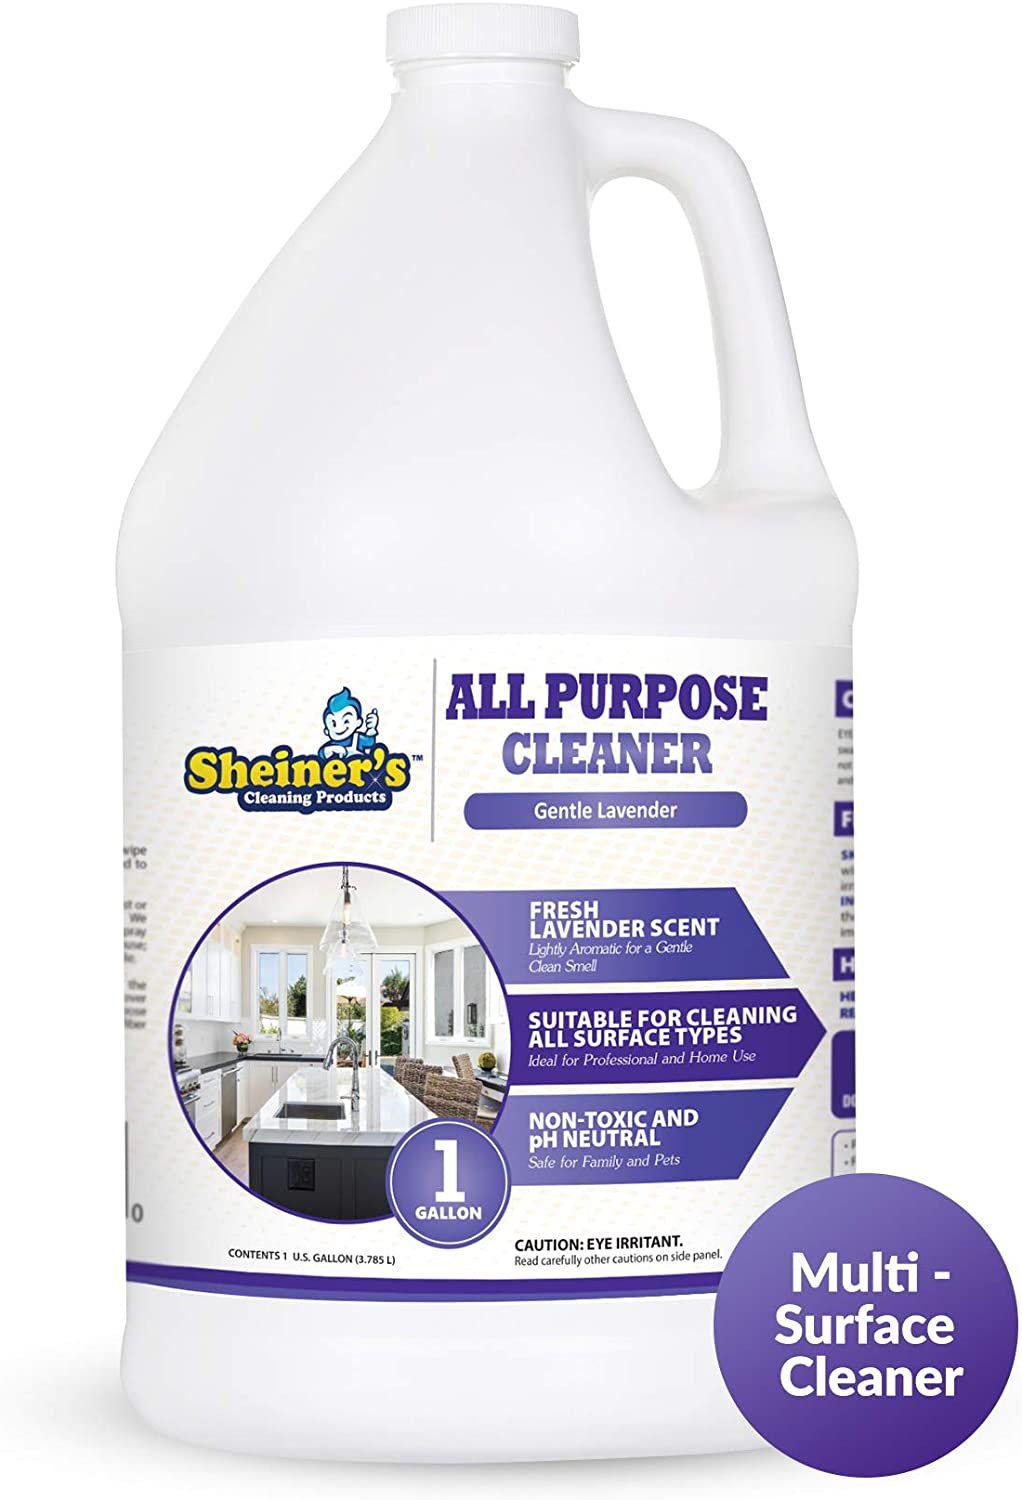 All Purpose Cleaner, Multi Surface Cleaner for Home, Kitchen Countertop,  Kitchen Floor, and Universal Stone Cleaning, Gentle Lavender Scent, 9  Gallon ...